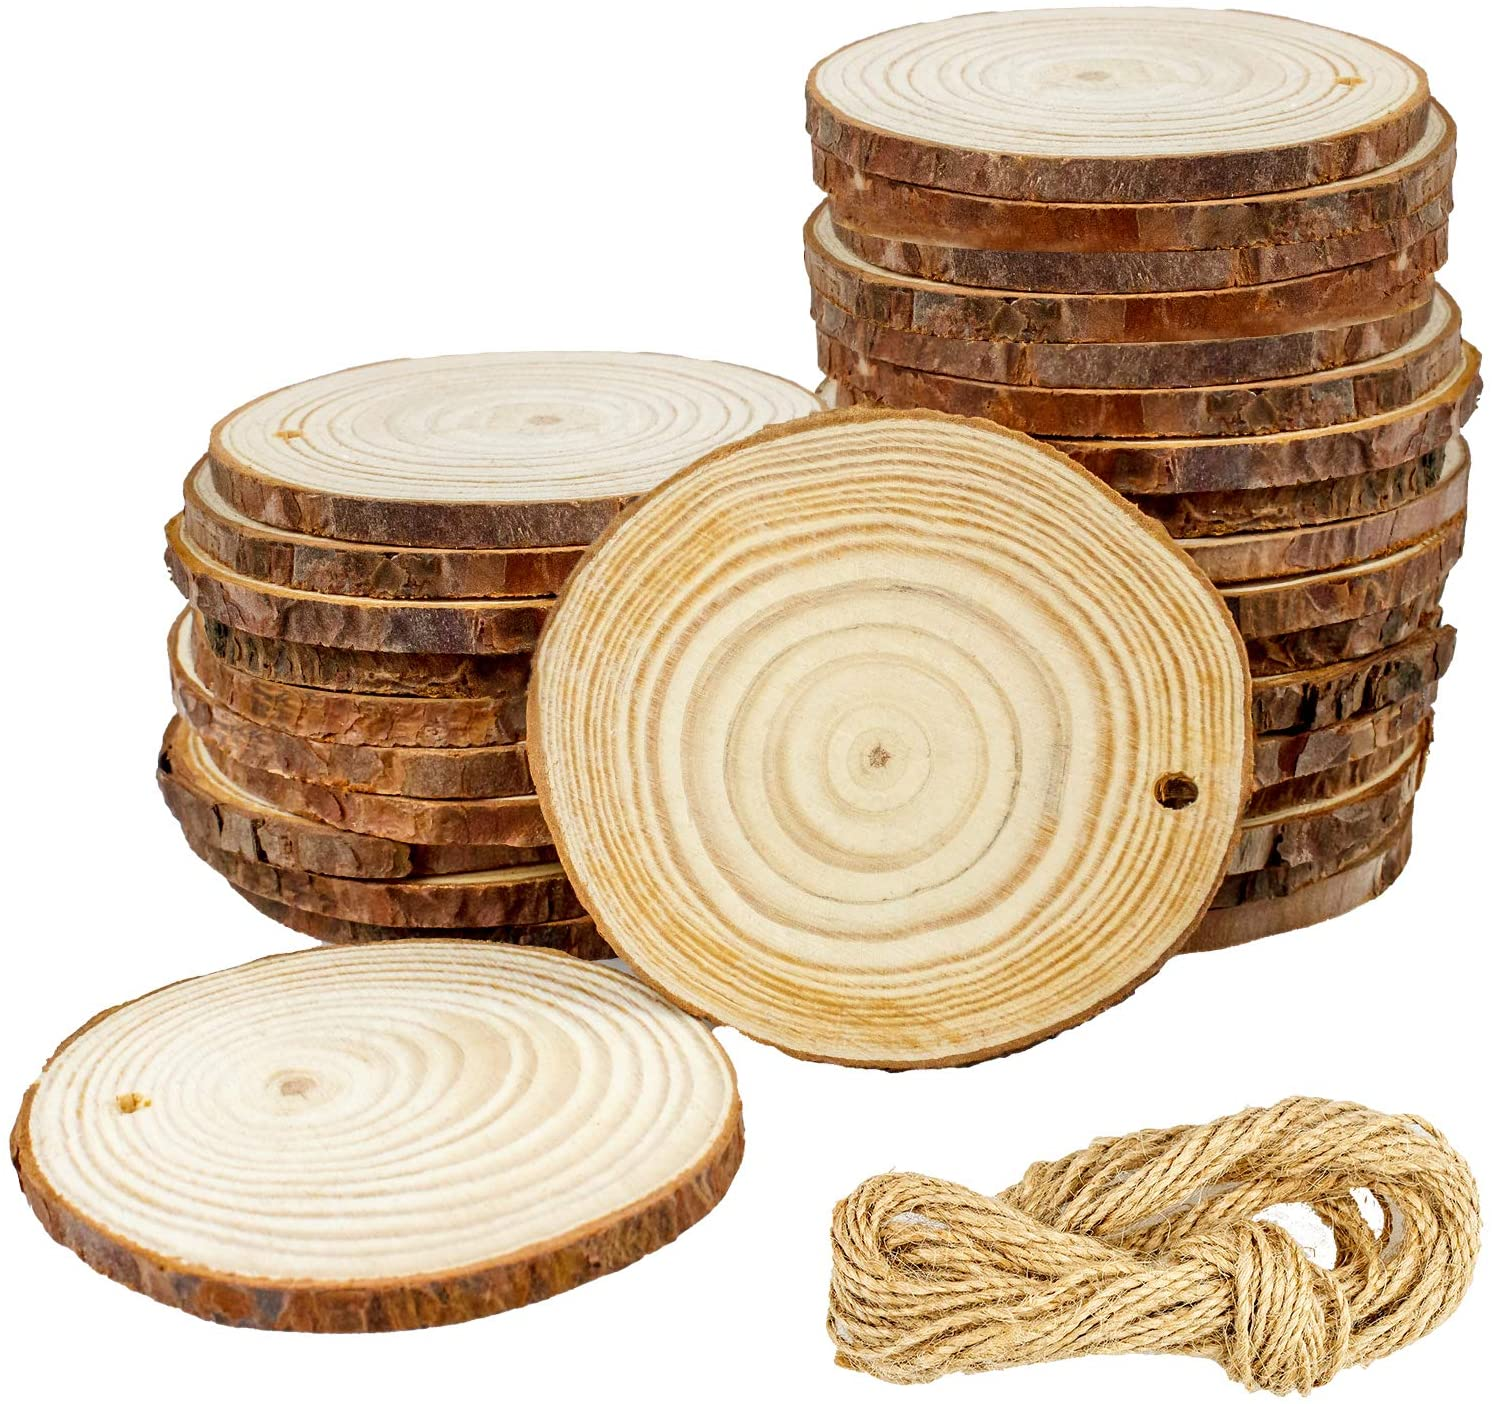 Unfinished Natural Wood Slices 30 Pcs 2.7-3.2 inch Craft Wood Circles Crafts Christmas Ornaments Rustic Wedding Decoration DIY Crafts Predrilled Natural Wooden with Bark for Crafts